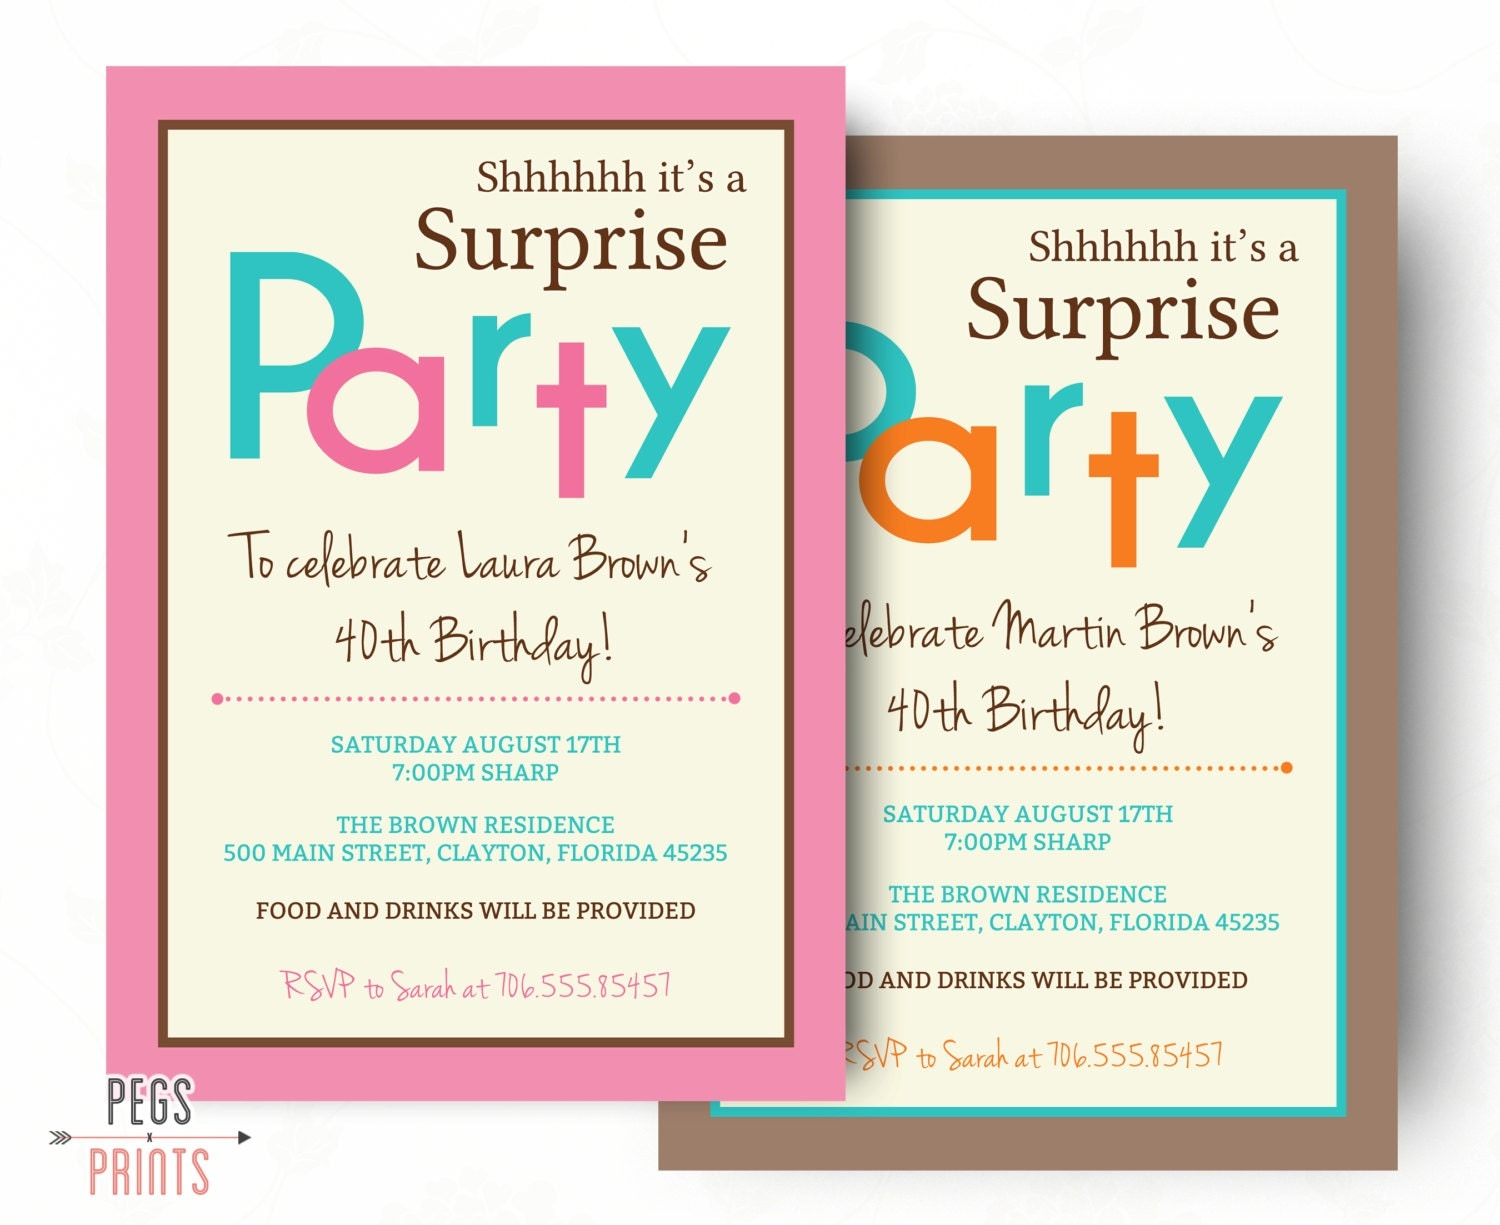 Surprise Birthday Invitation Printable Surprise Birthday - Birthday invitation wording surprise party